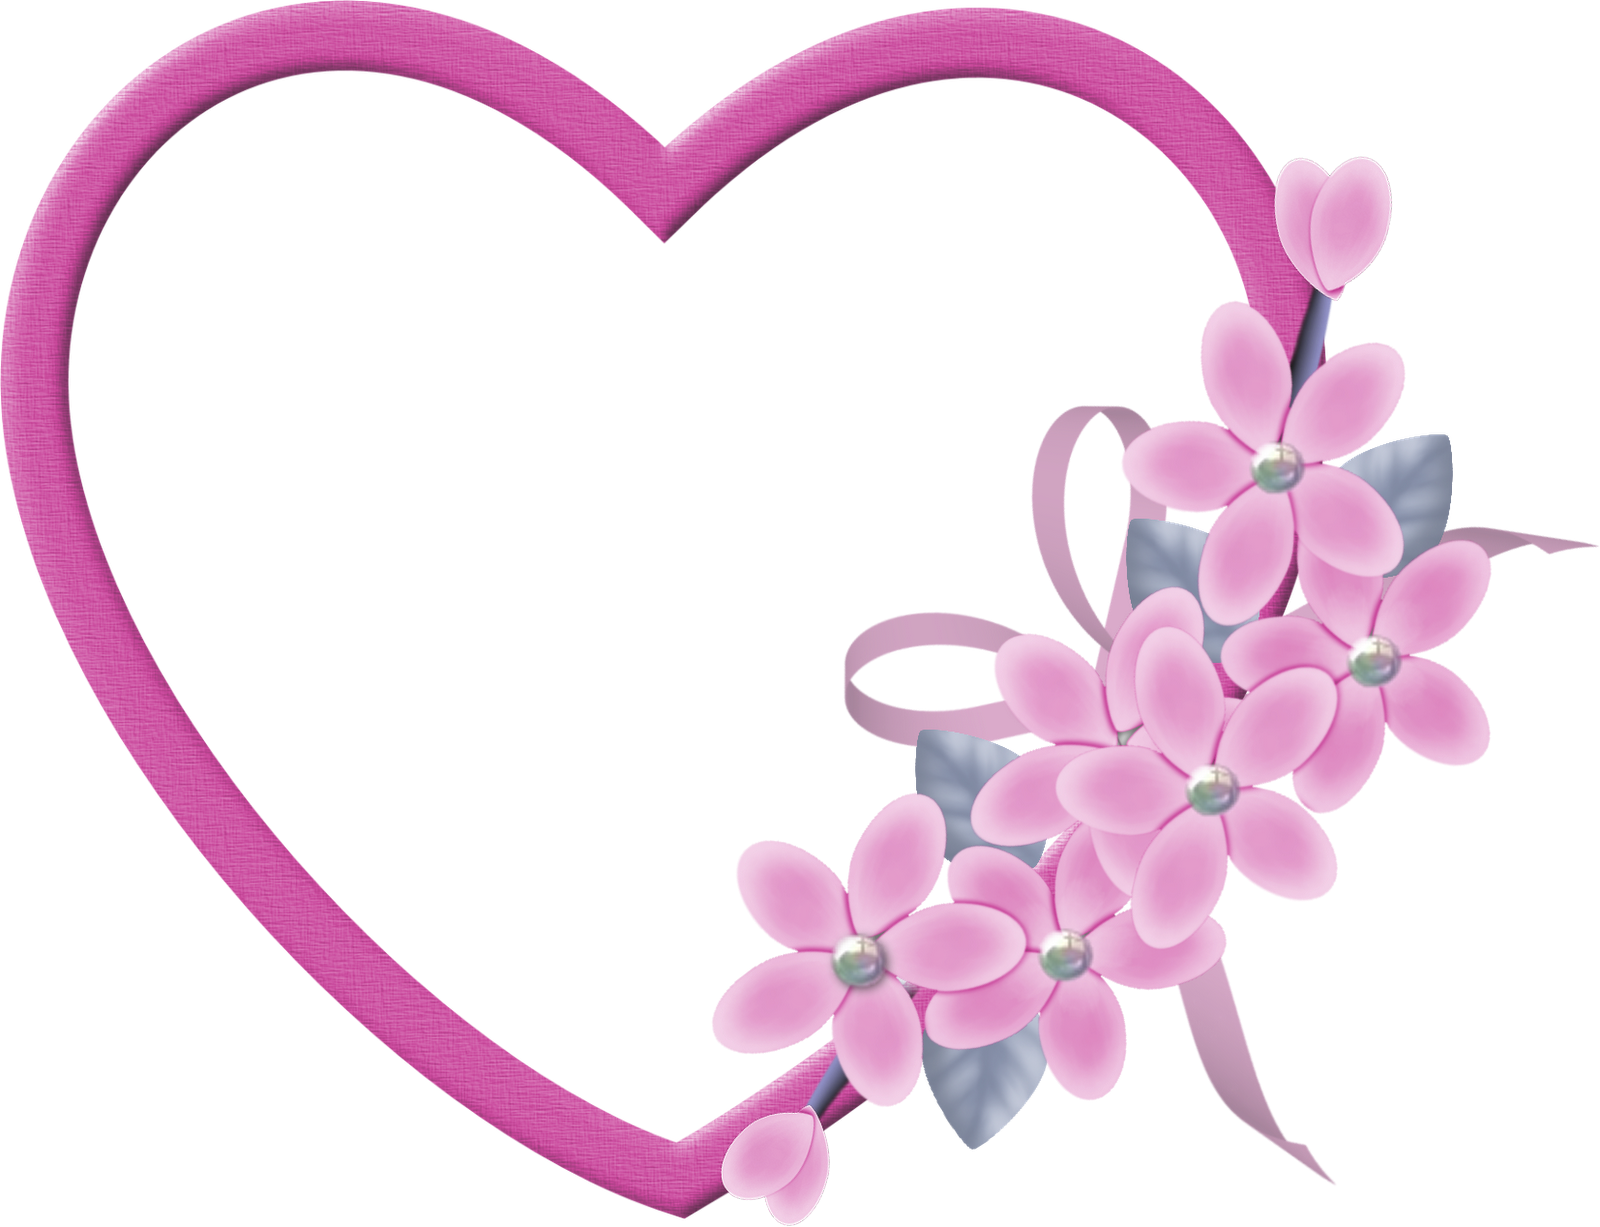 Pink hearts and flowers clipart freeuse stock Large_Pink_Heart_Transparent_ Frame_ with_Pink_Flowers.png?m=1399676400 freeuse stock